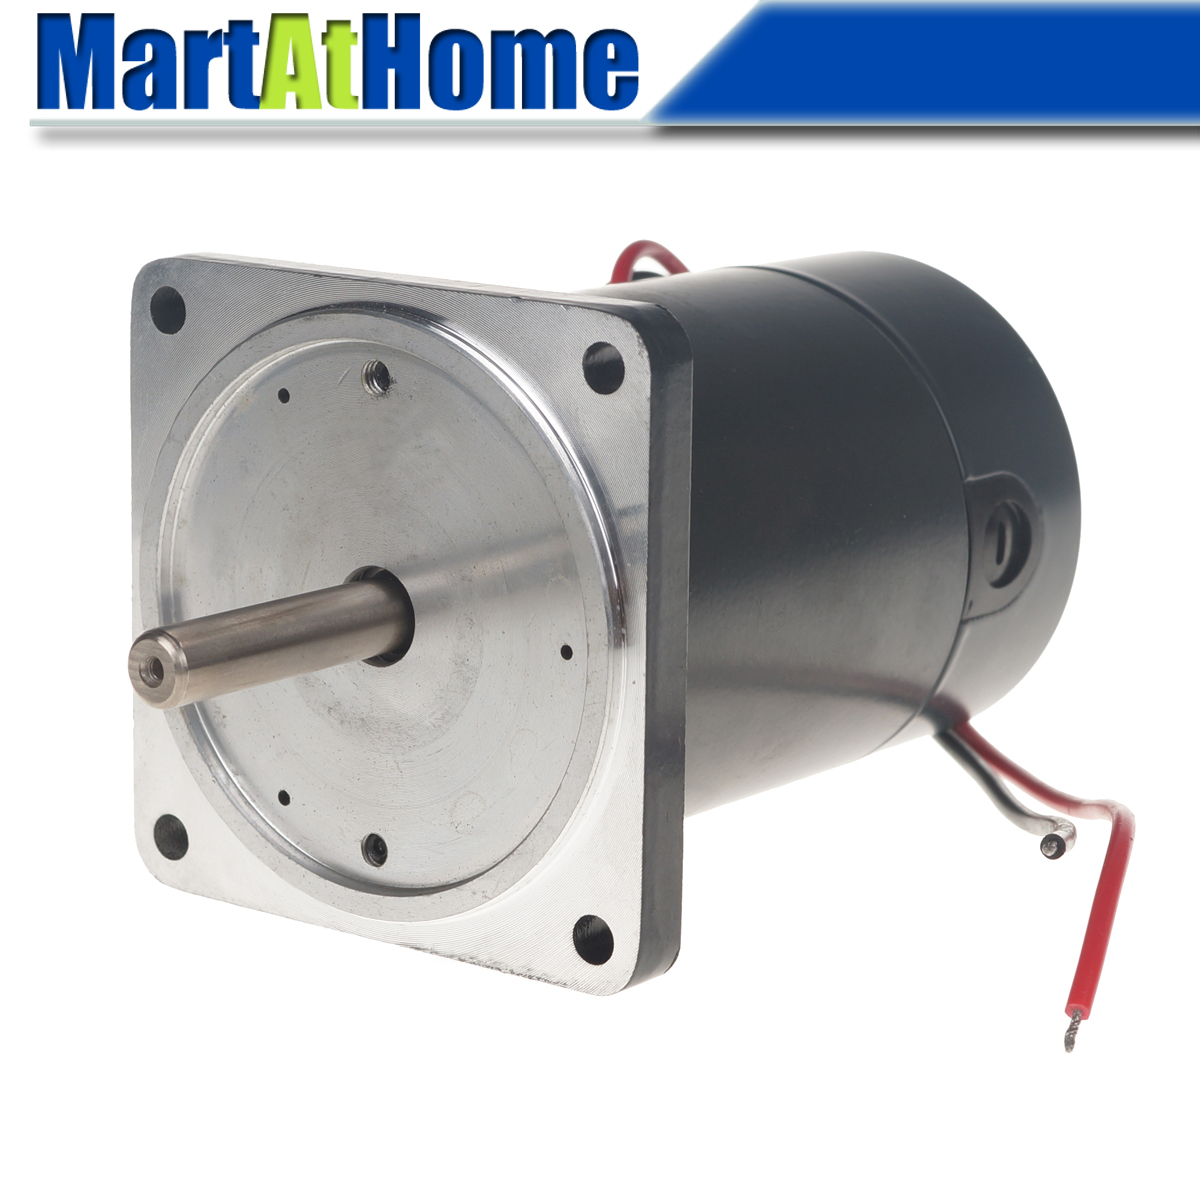 1pcs DC24-36V 4000-6000rpm Low Speed Large Torque Mute 775 DC Motor for DIY Part